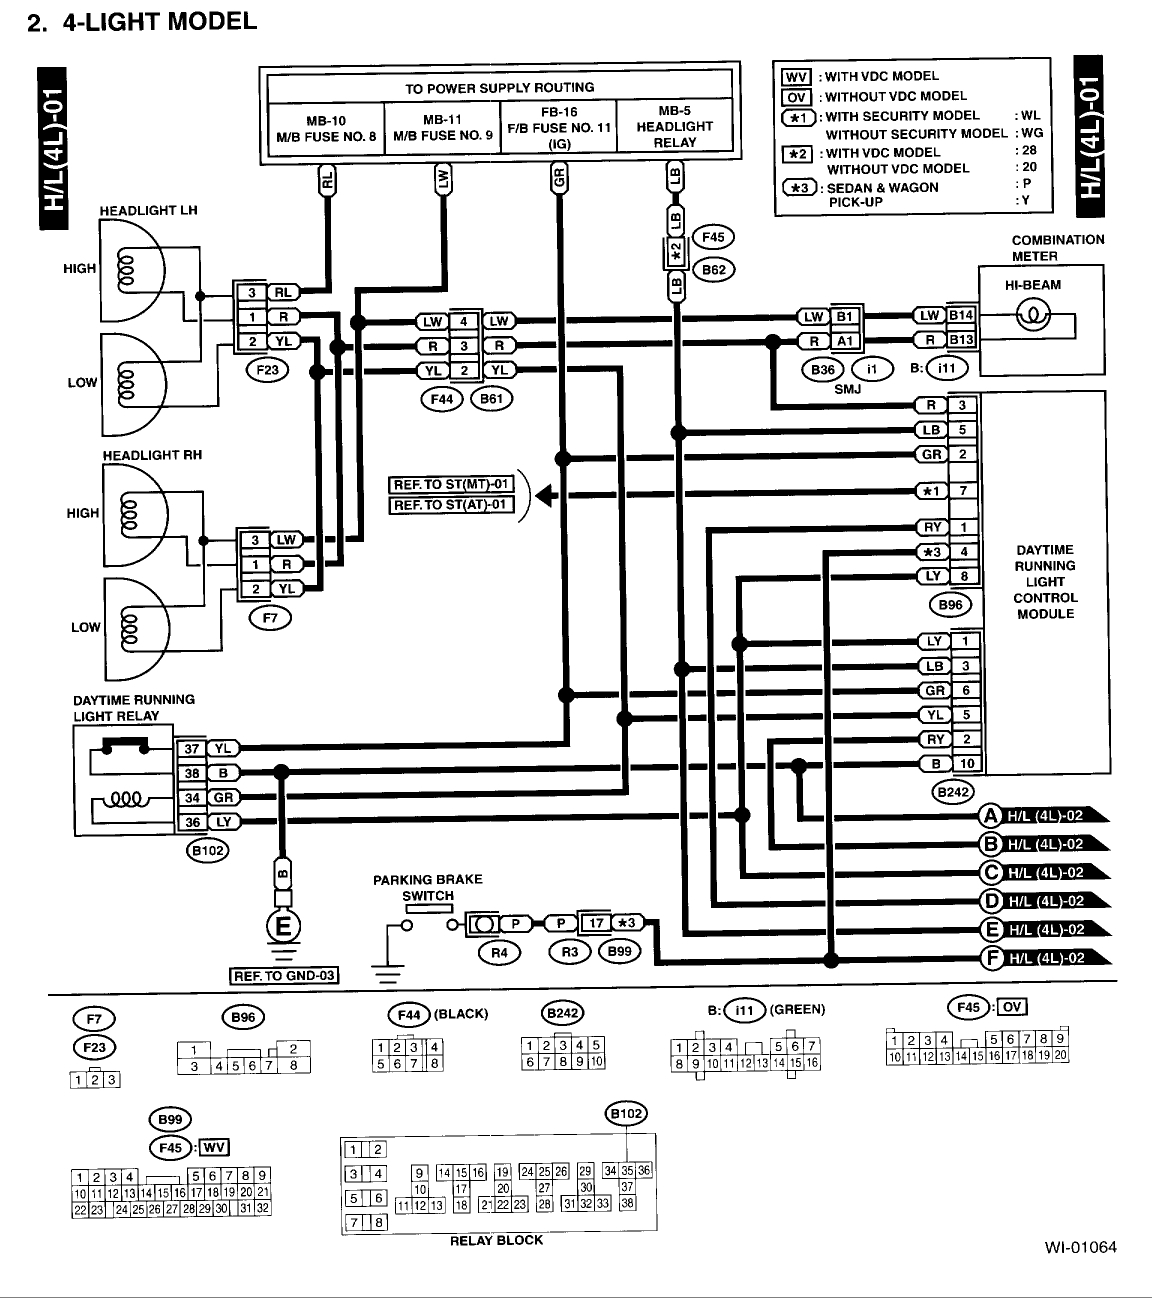 Subaru Outback Radio Wiring Diagram Gallery